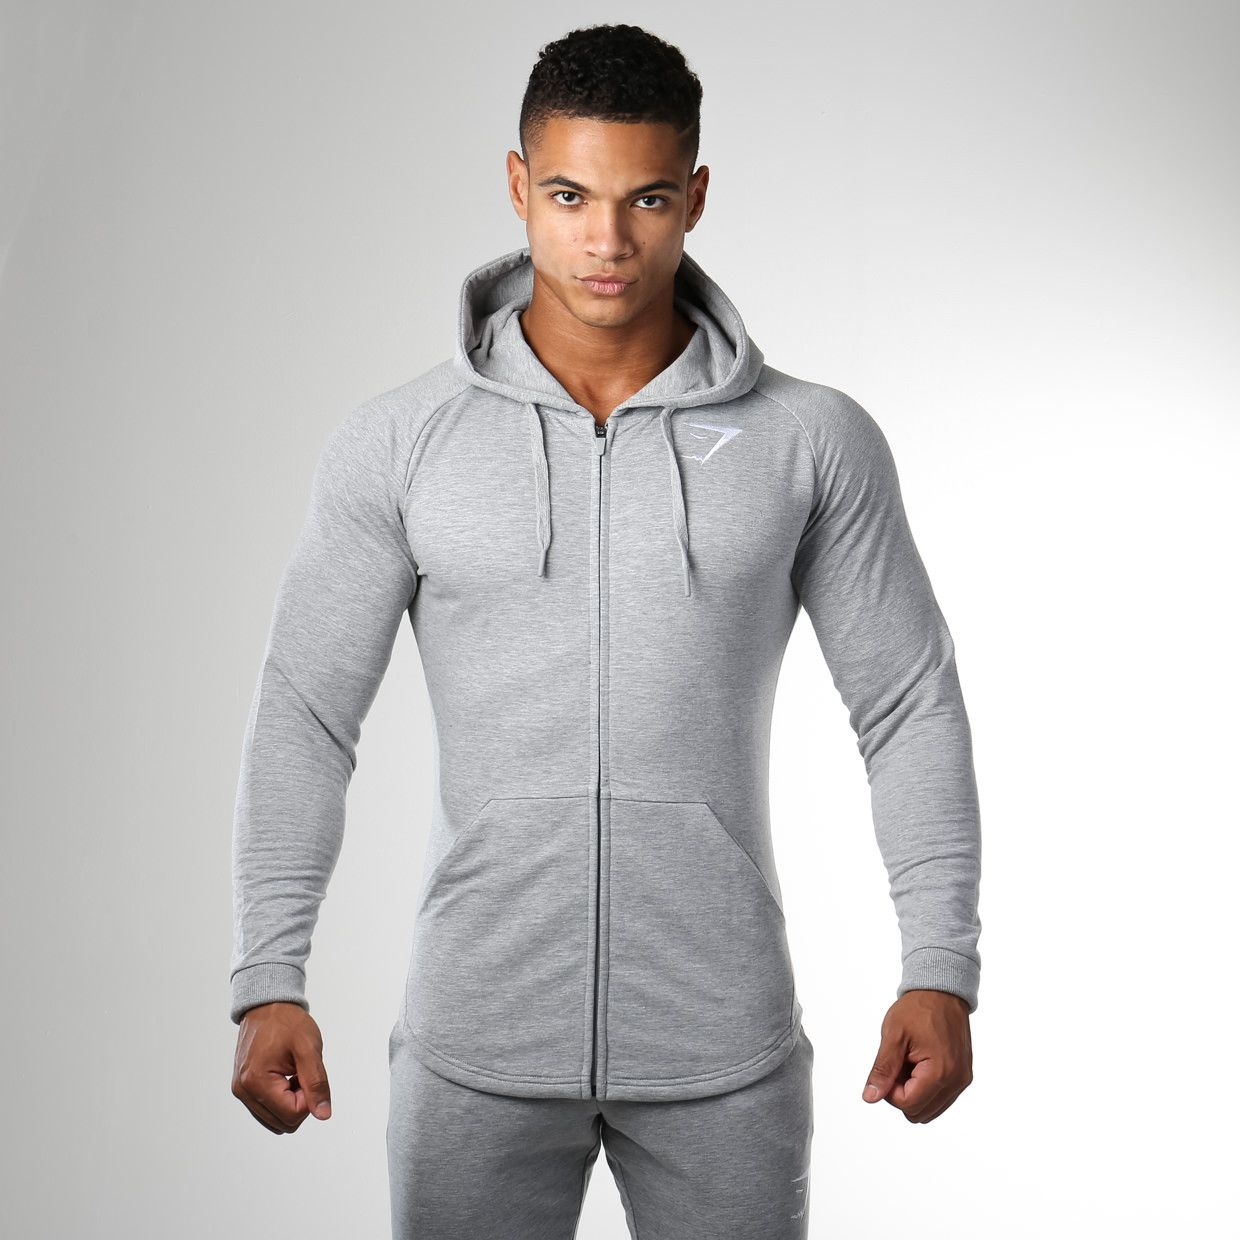 Activewear Men's Clothing Grey Gymshark Ark Zip Hoodie Size M Terrific Value